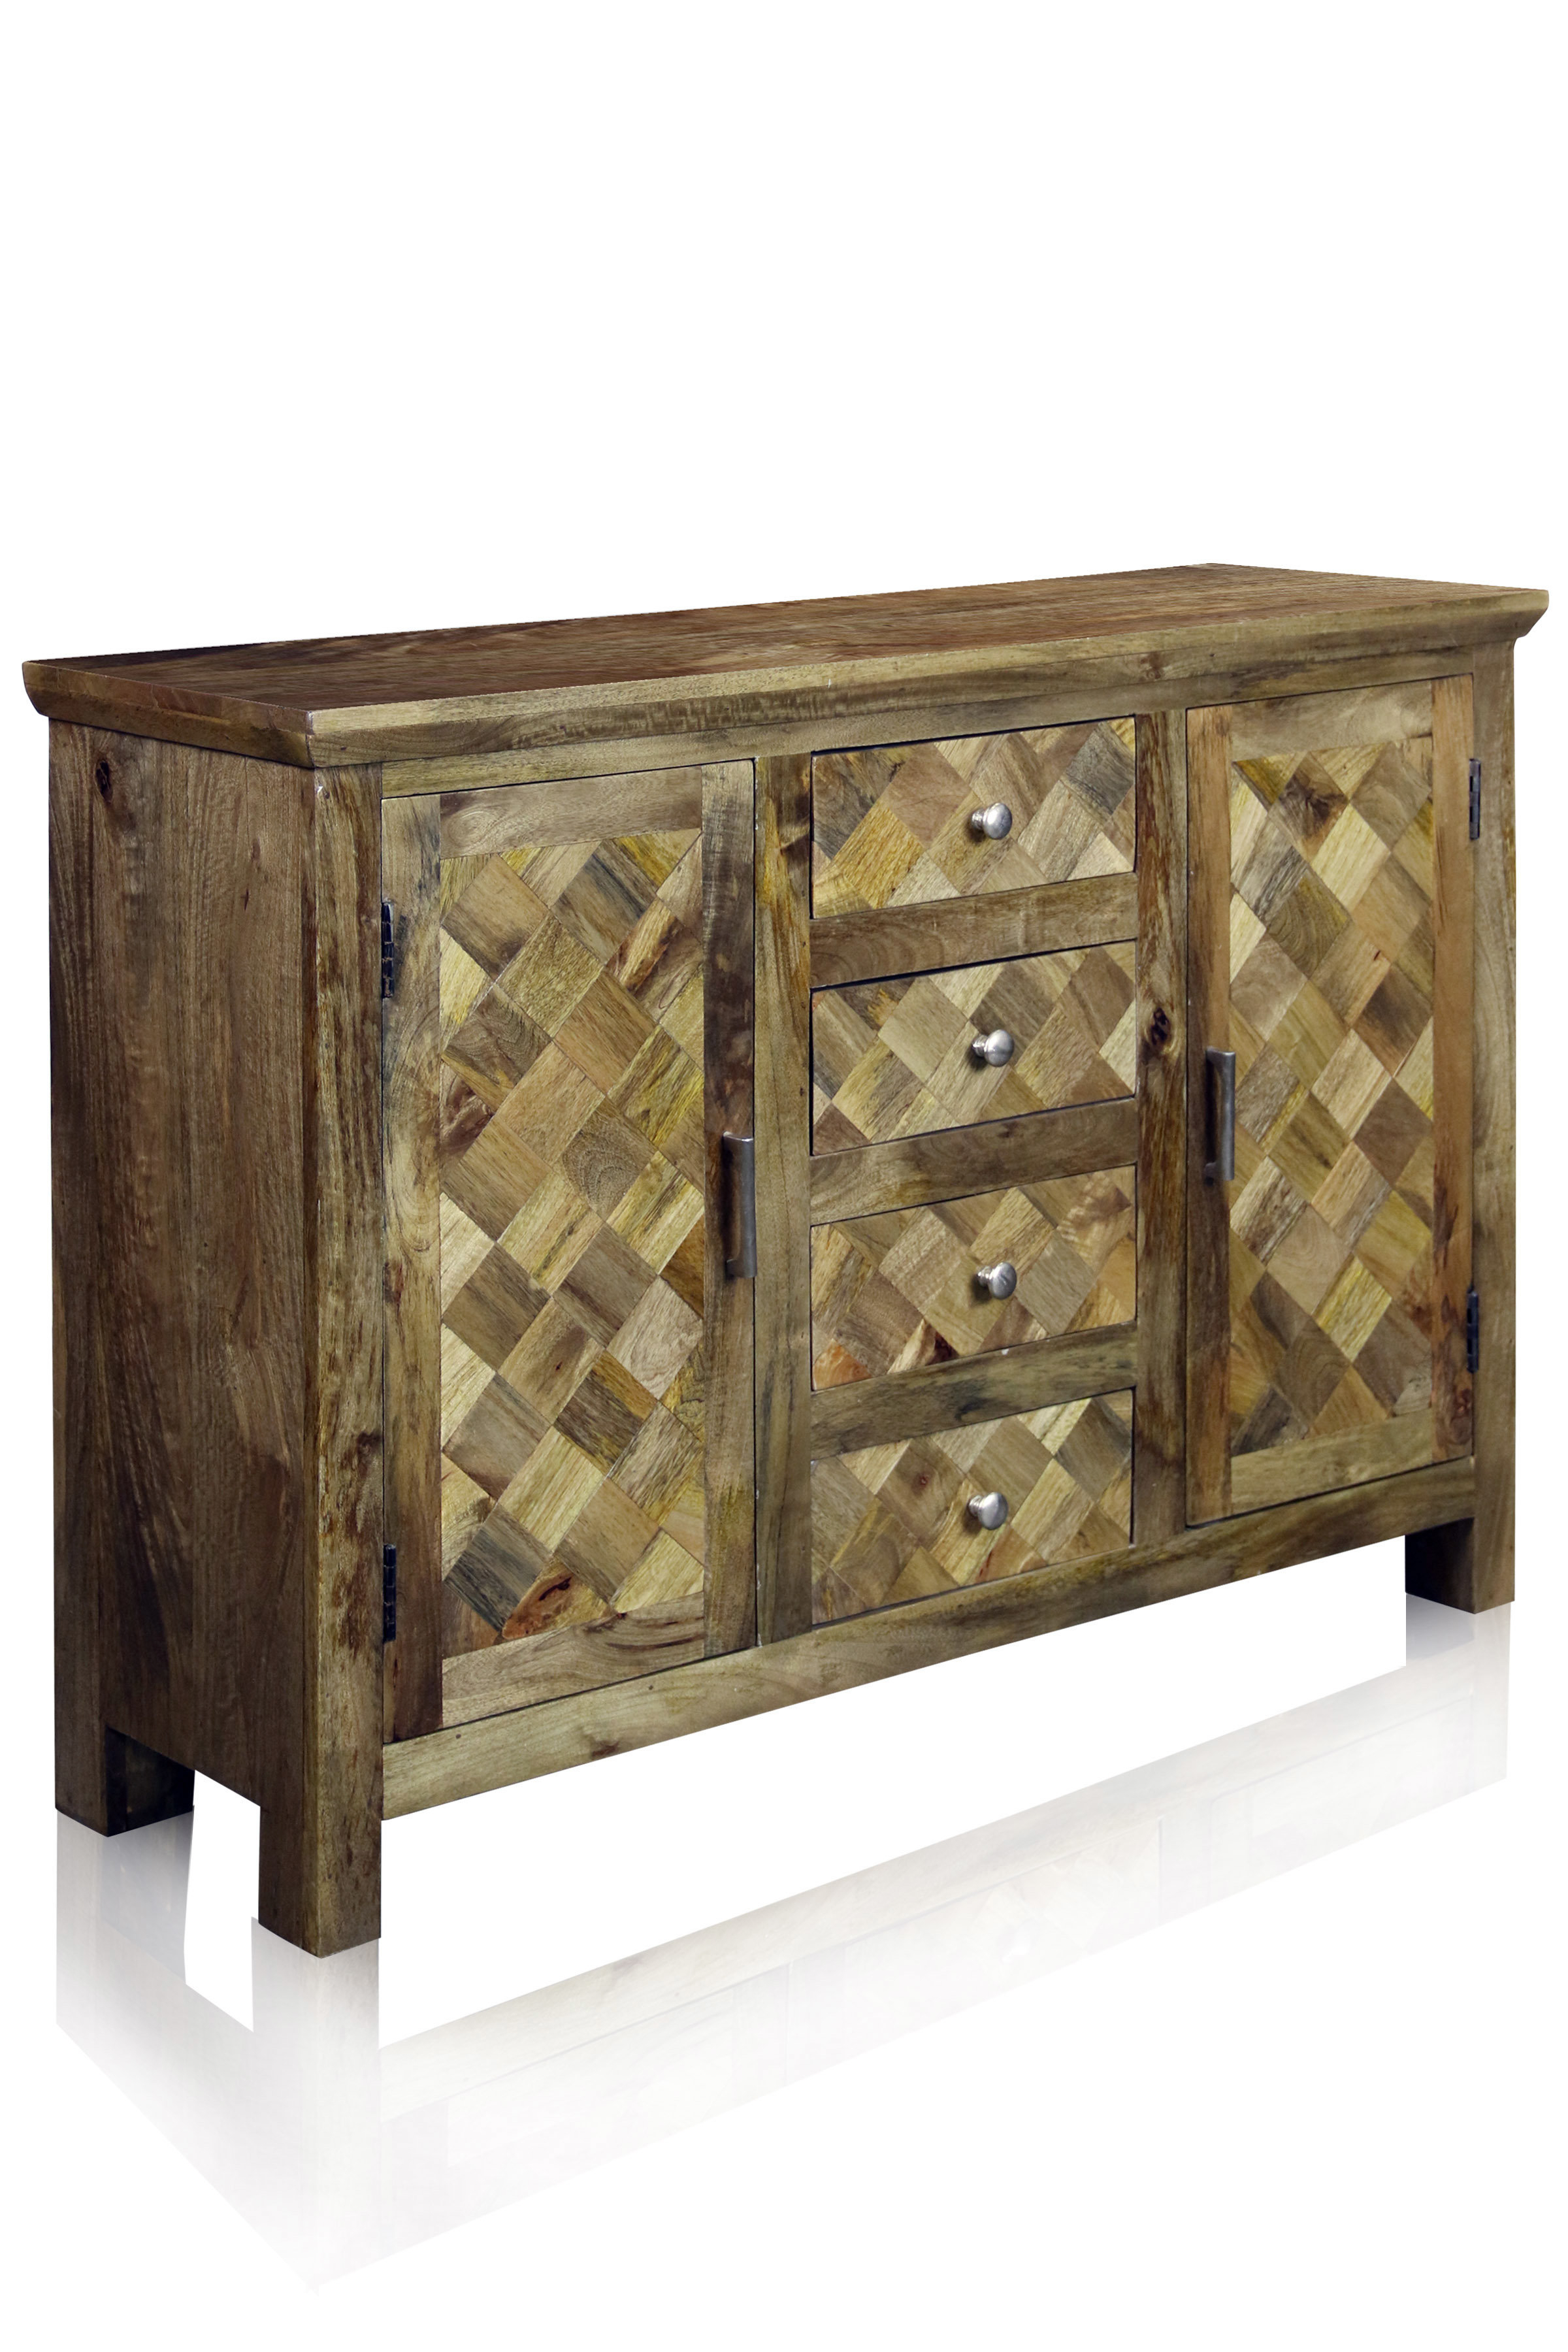 4Drawer Server With 2 Doors And Central Wine Bottle Storage In Malibu 2 Door 4 Drawer Sideboards (View 2 of 20)